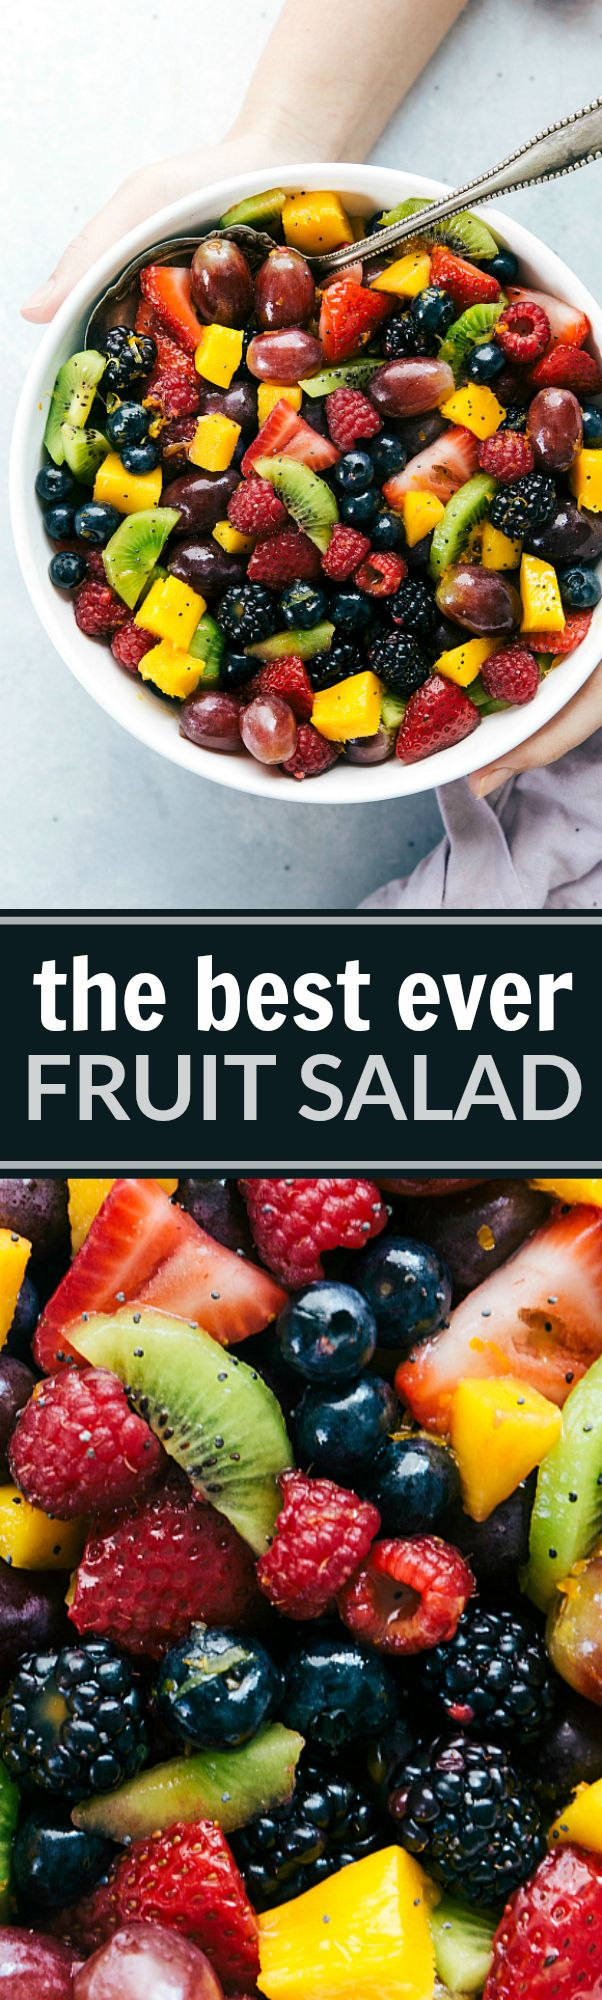 The best ever fruit salad coated in a simple blackberry lime dressing. Perfect for potlucks, summer parties, or a side dish to your meals! #fruitsalad